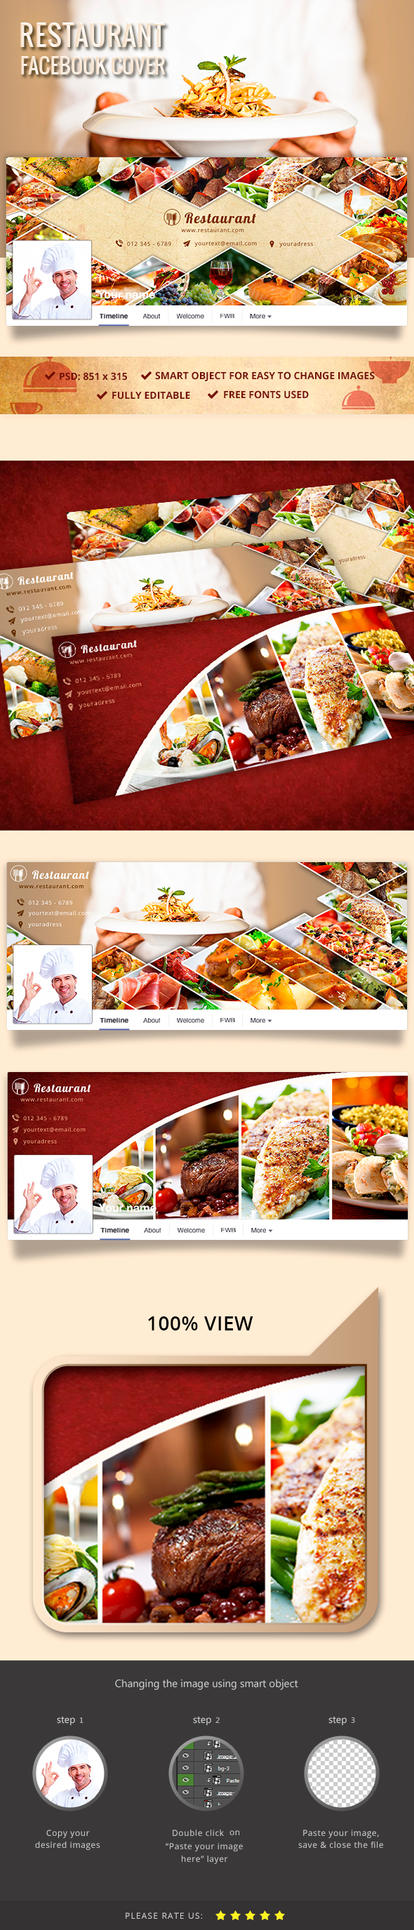 Restaurant Facebook Cover by Yoopiart